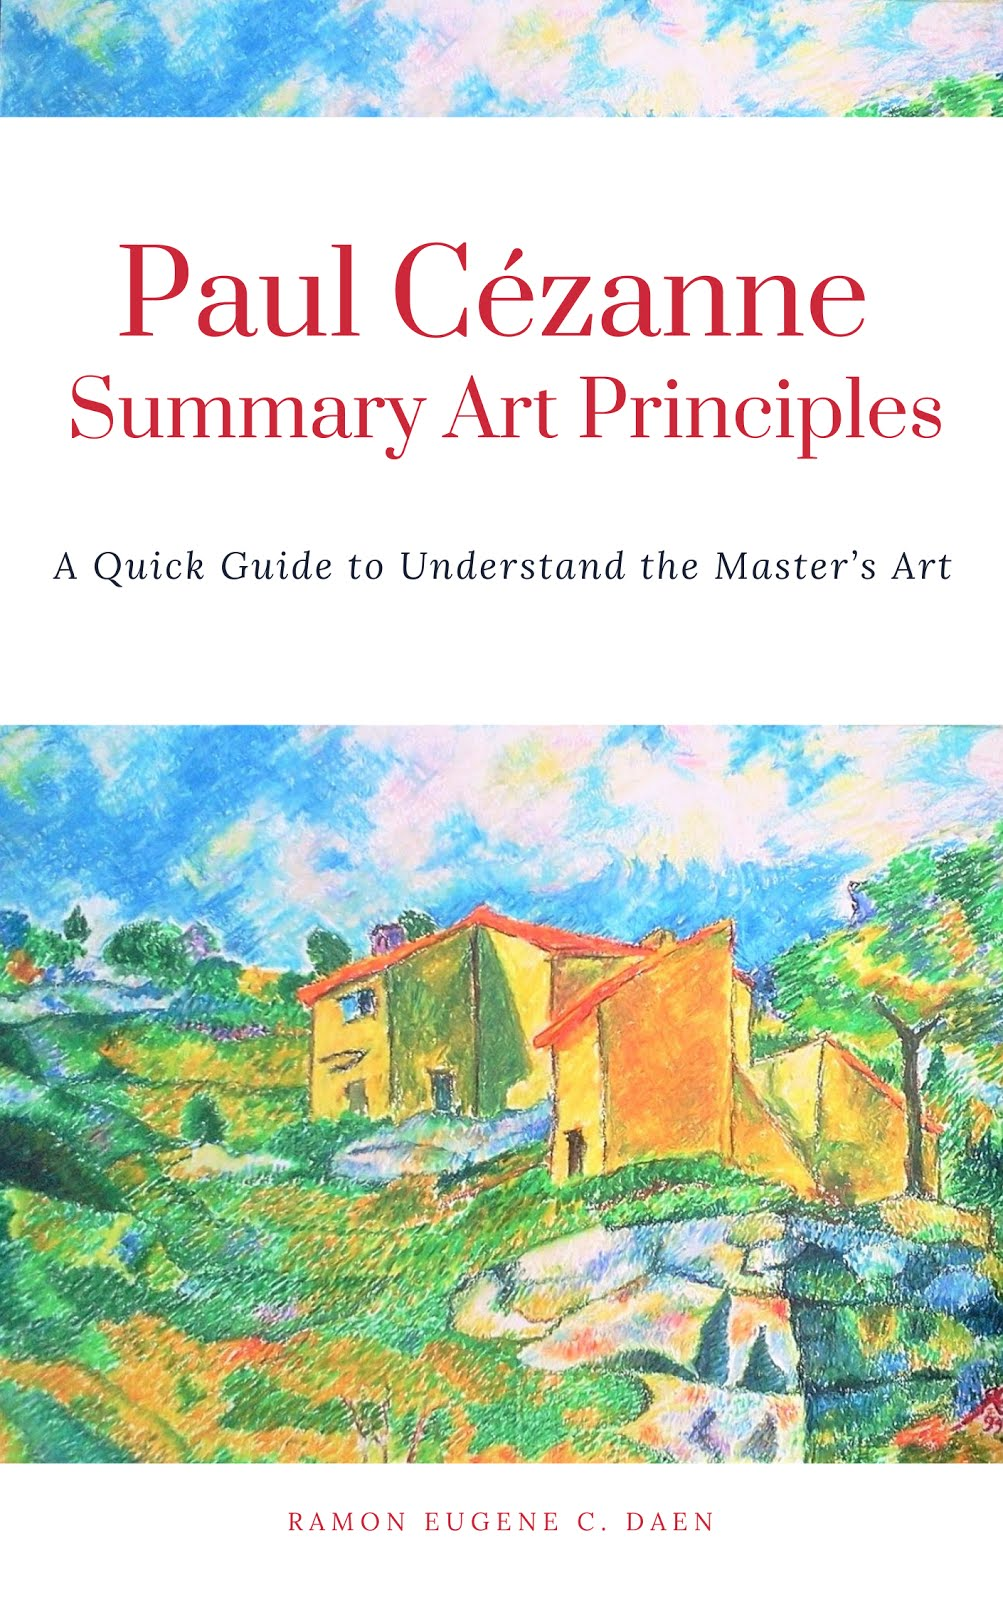 Buy Paul Cezanne Summary Art Principles ebook